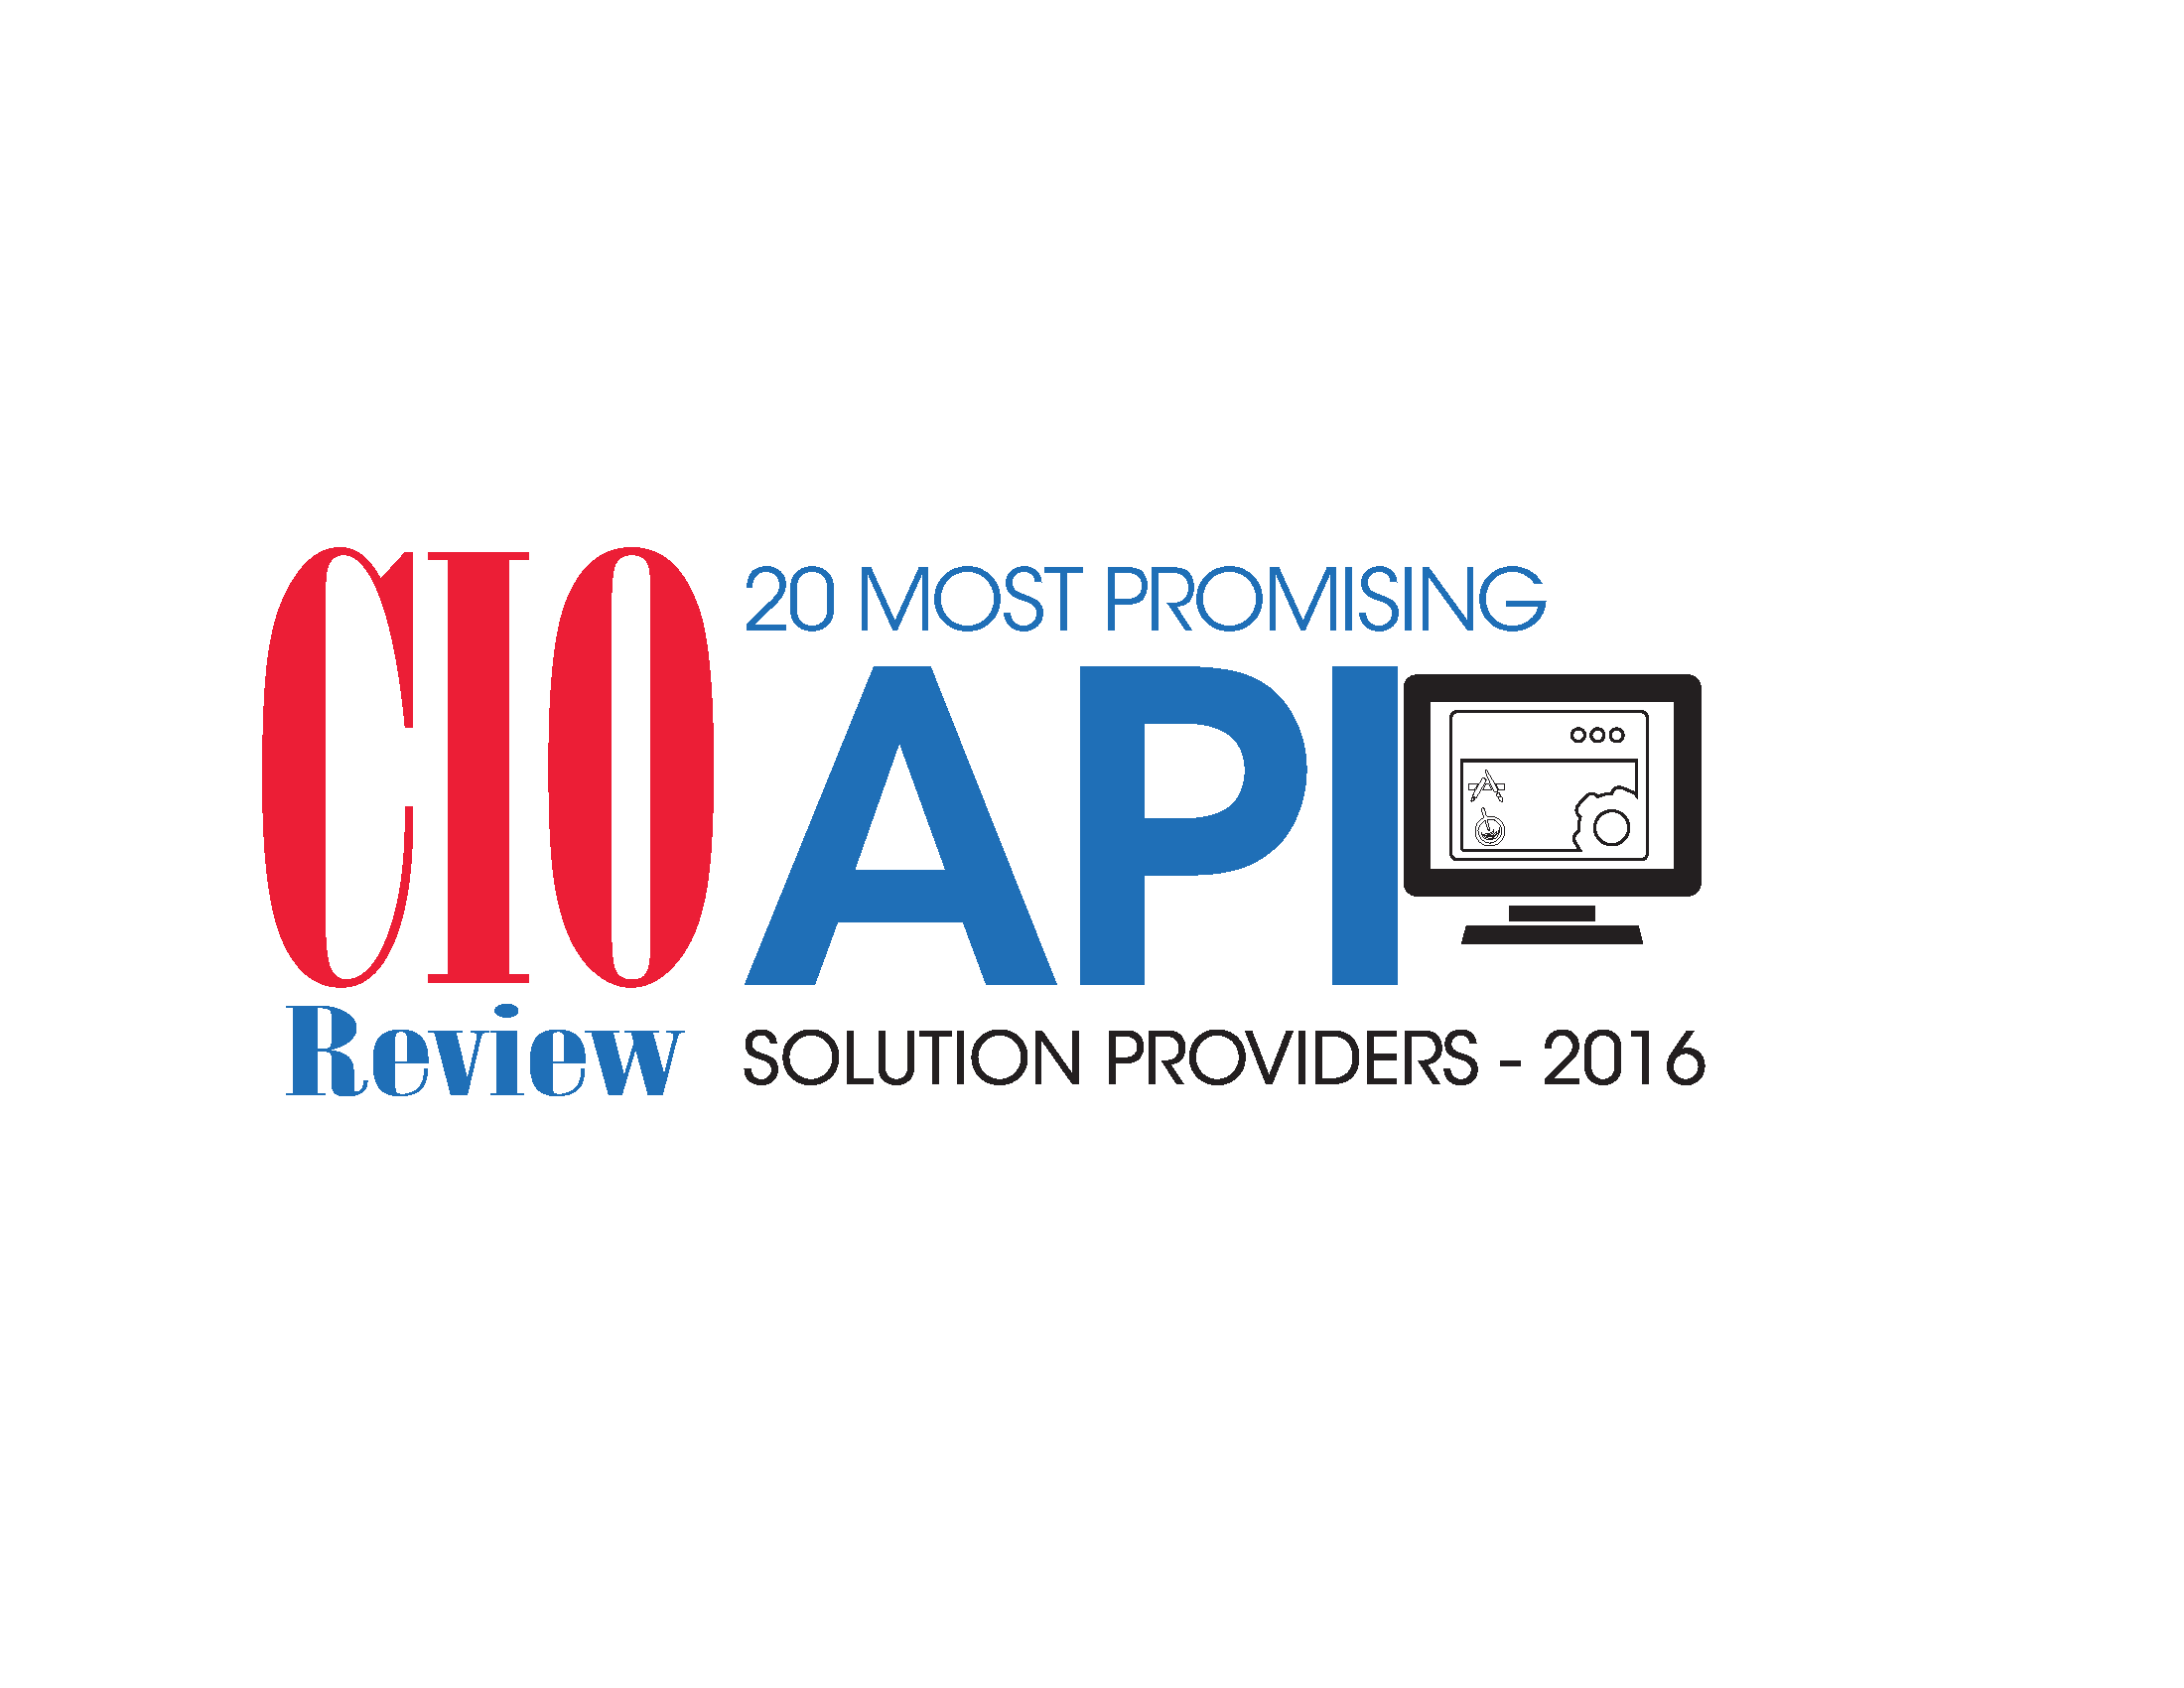 API integration and API management - OpenLegacy Named 20 Most Promising API Solution Providers by CIO Review